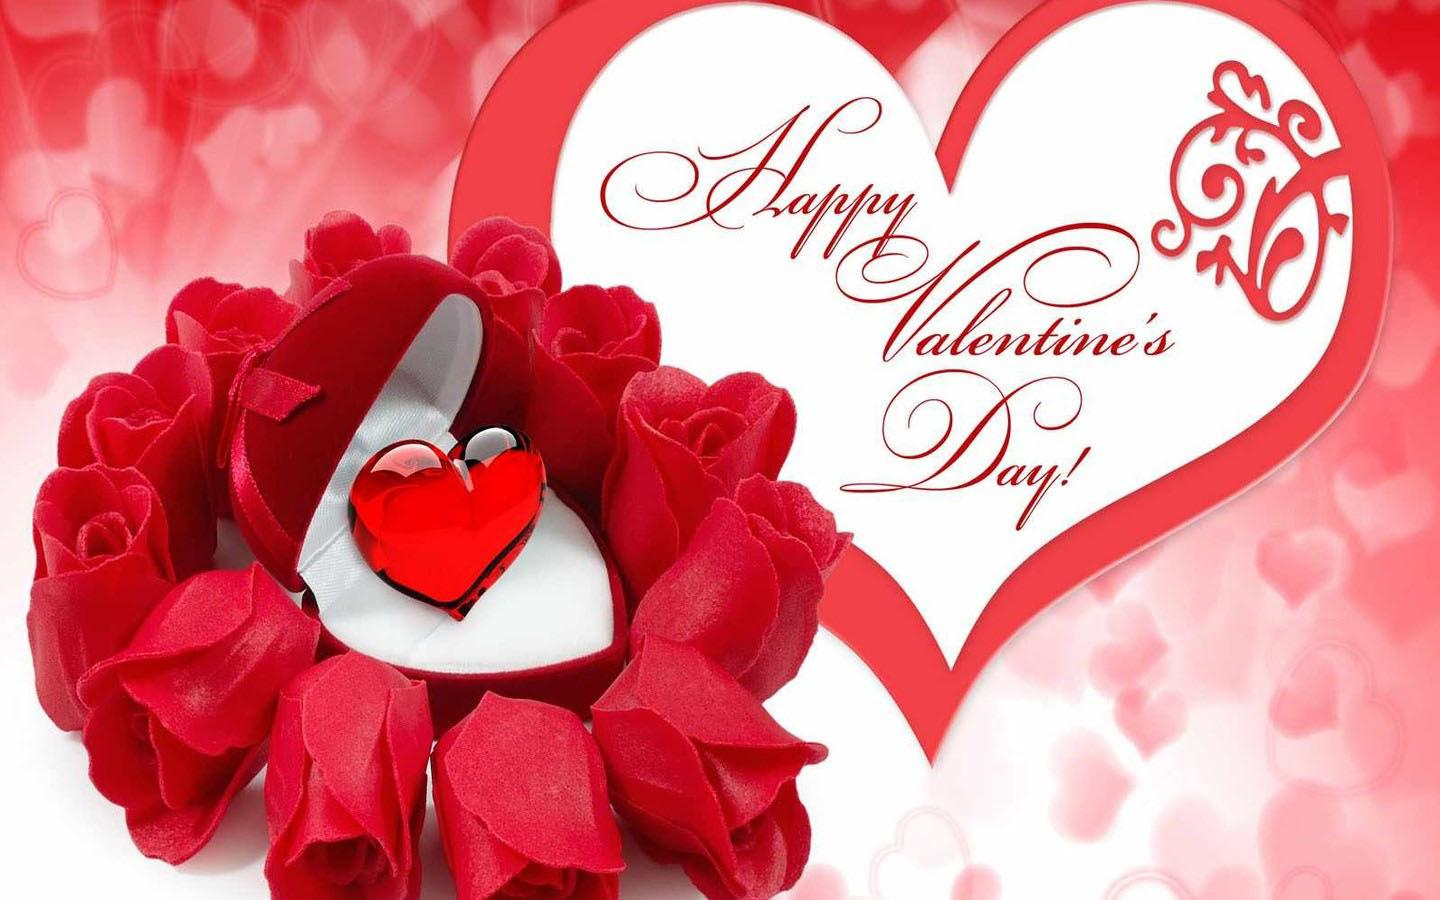 valentine's day wallpapers hd - android apps on google play